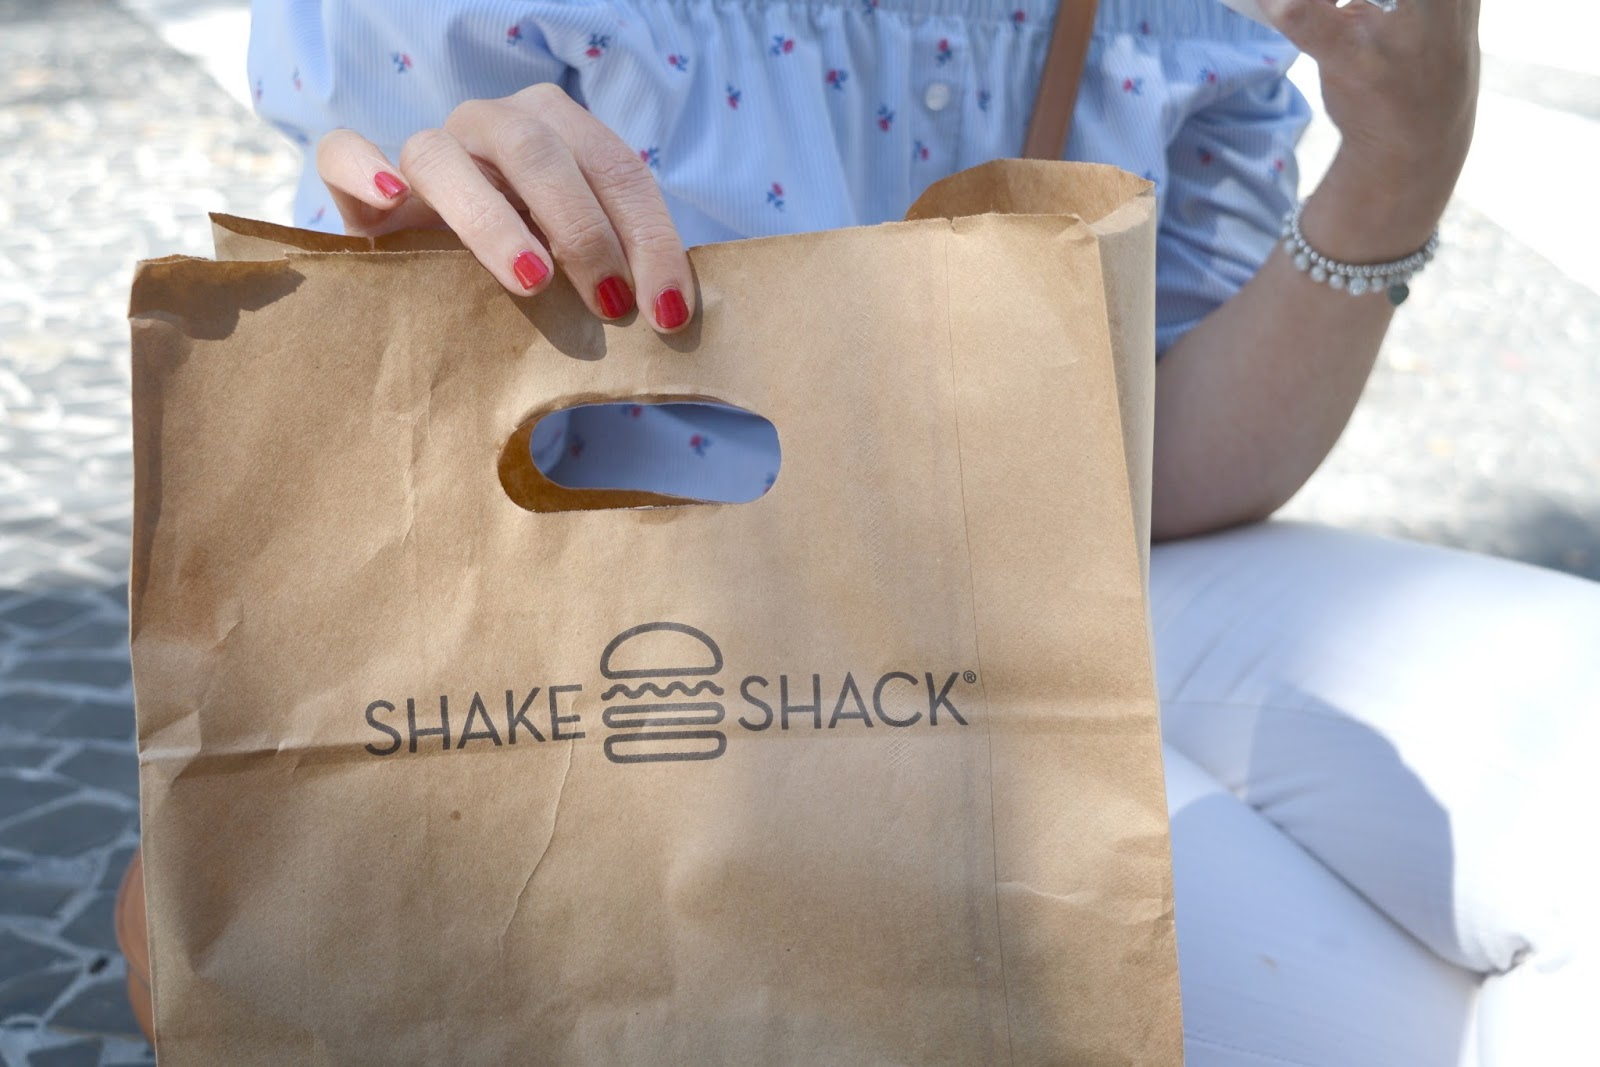 Miami Beach Shake Shack